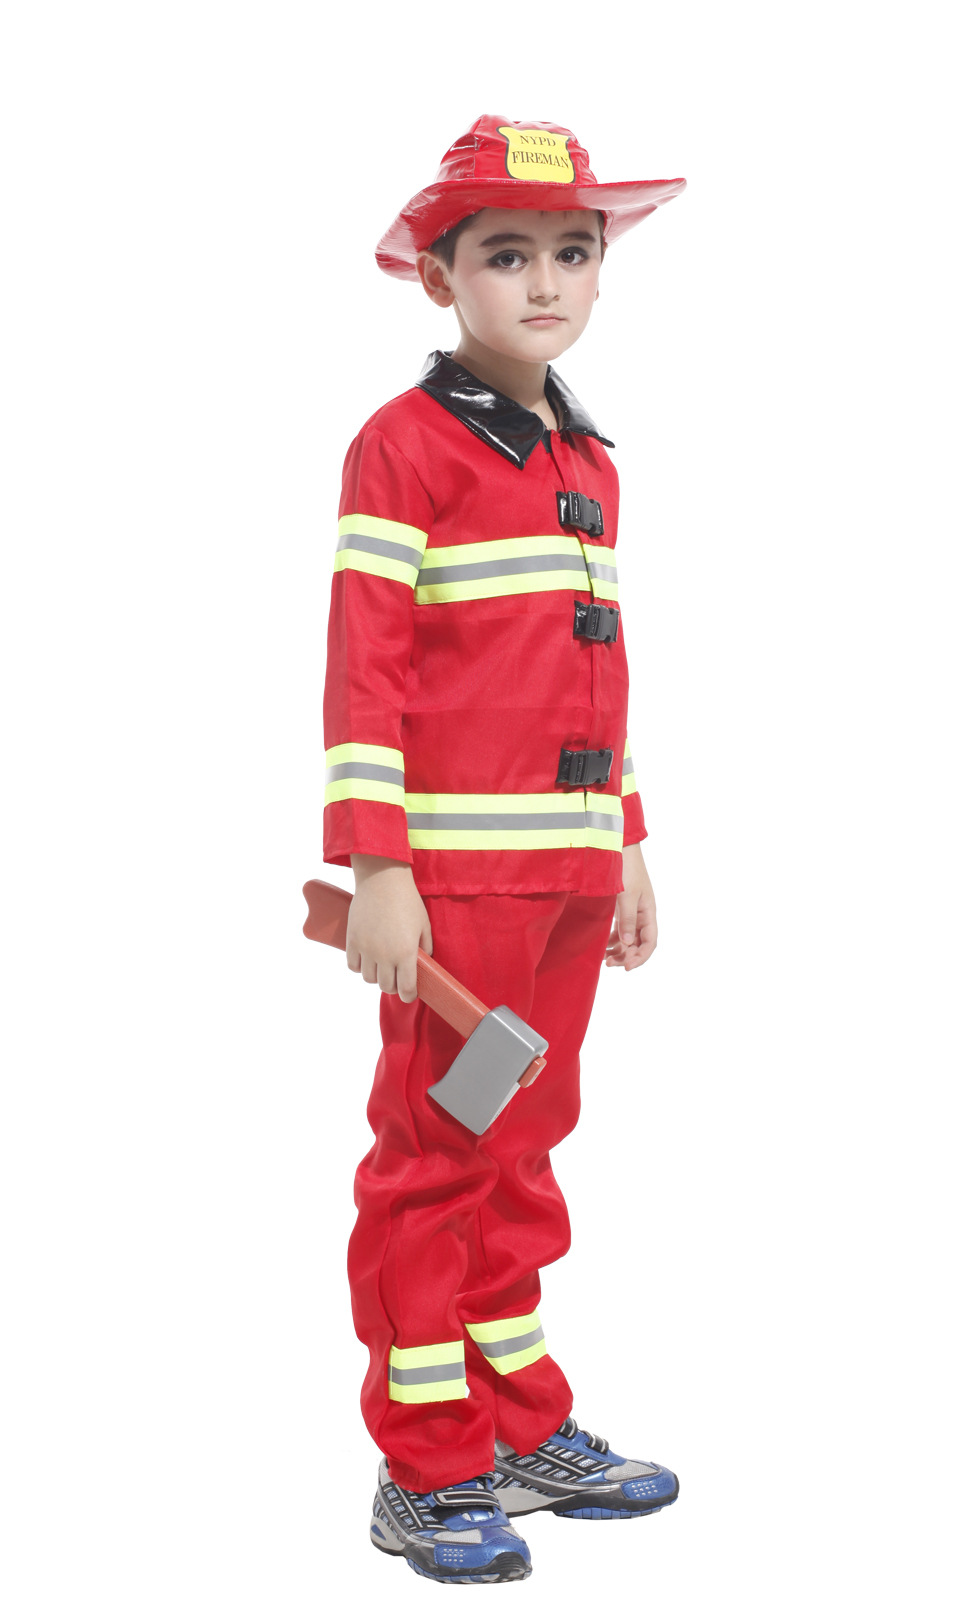 Smart M~xl New Fireman Boys Cosplay Hallowean Children Dress Up Party Fancy Stage Carnival Costume Kids Firefighters Uniform Suit Costumes & Accessories